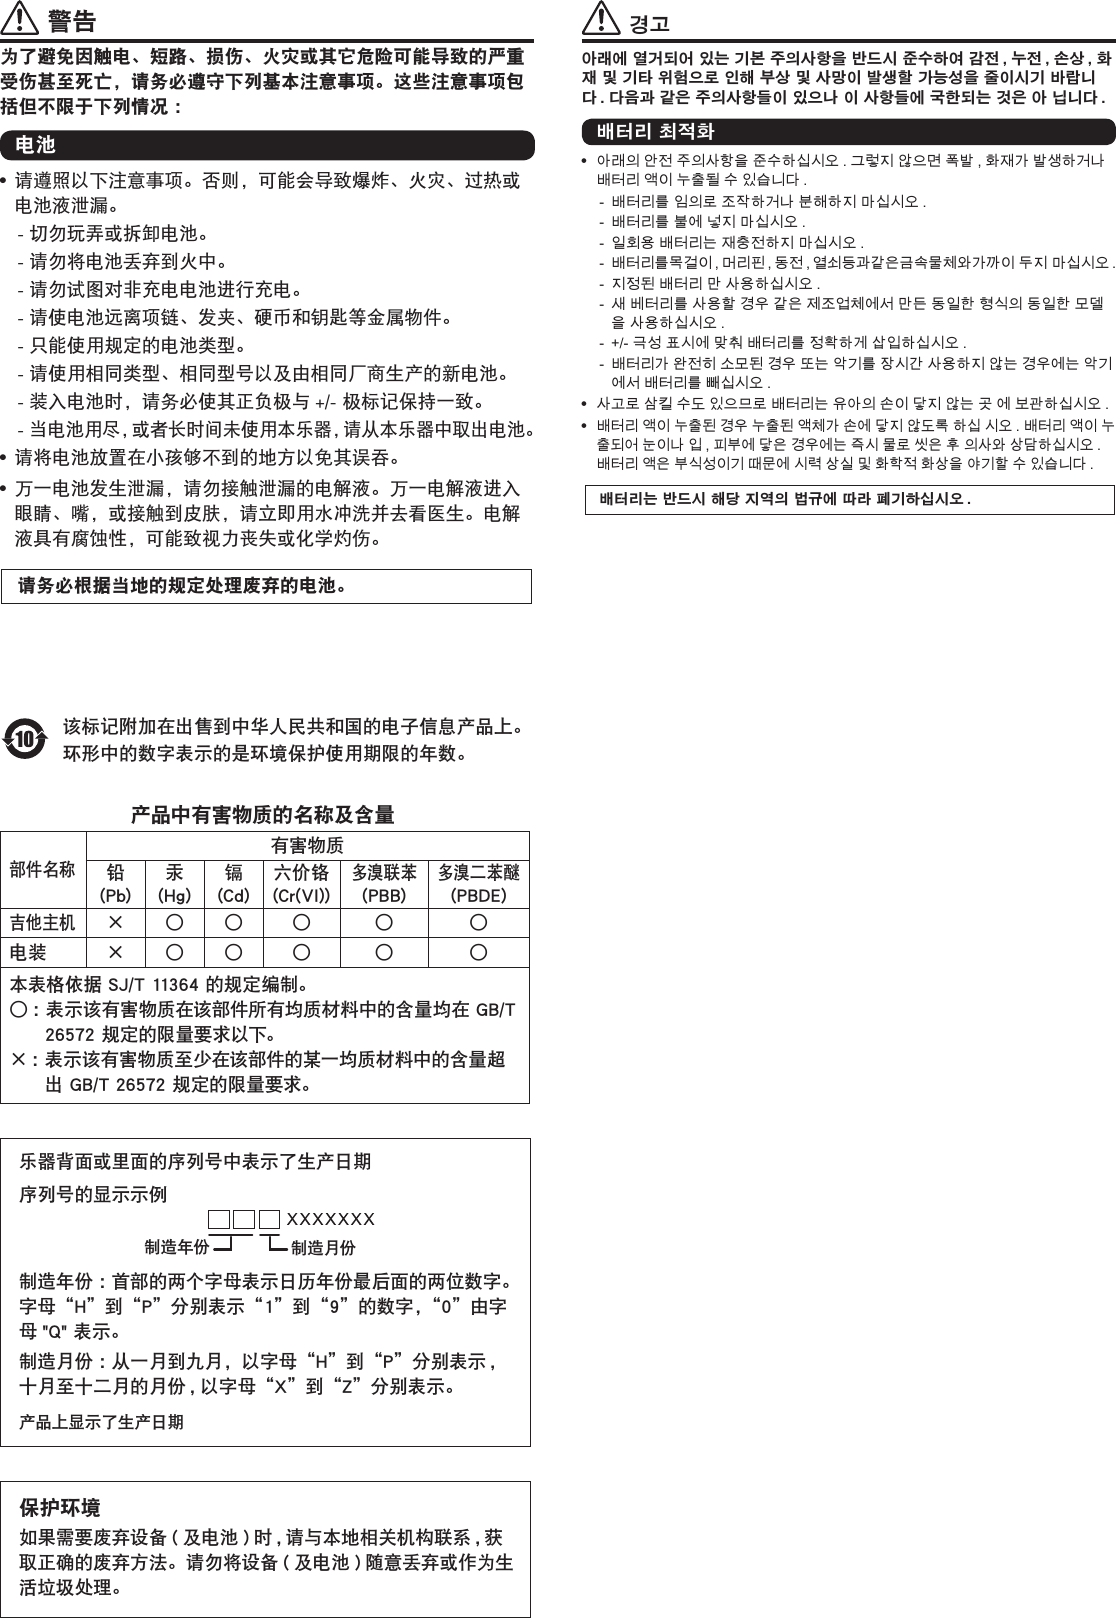 Yamaha Electric SYSTEM65 Owner's Manual 取扱説明書 Jp Om A0